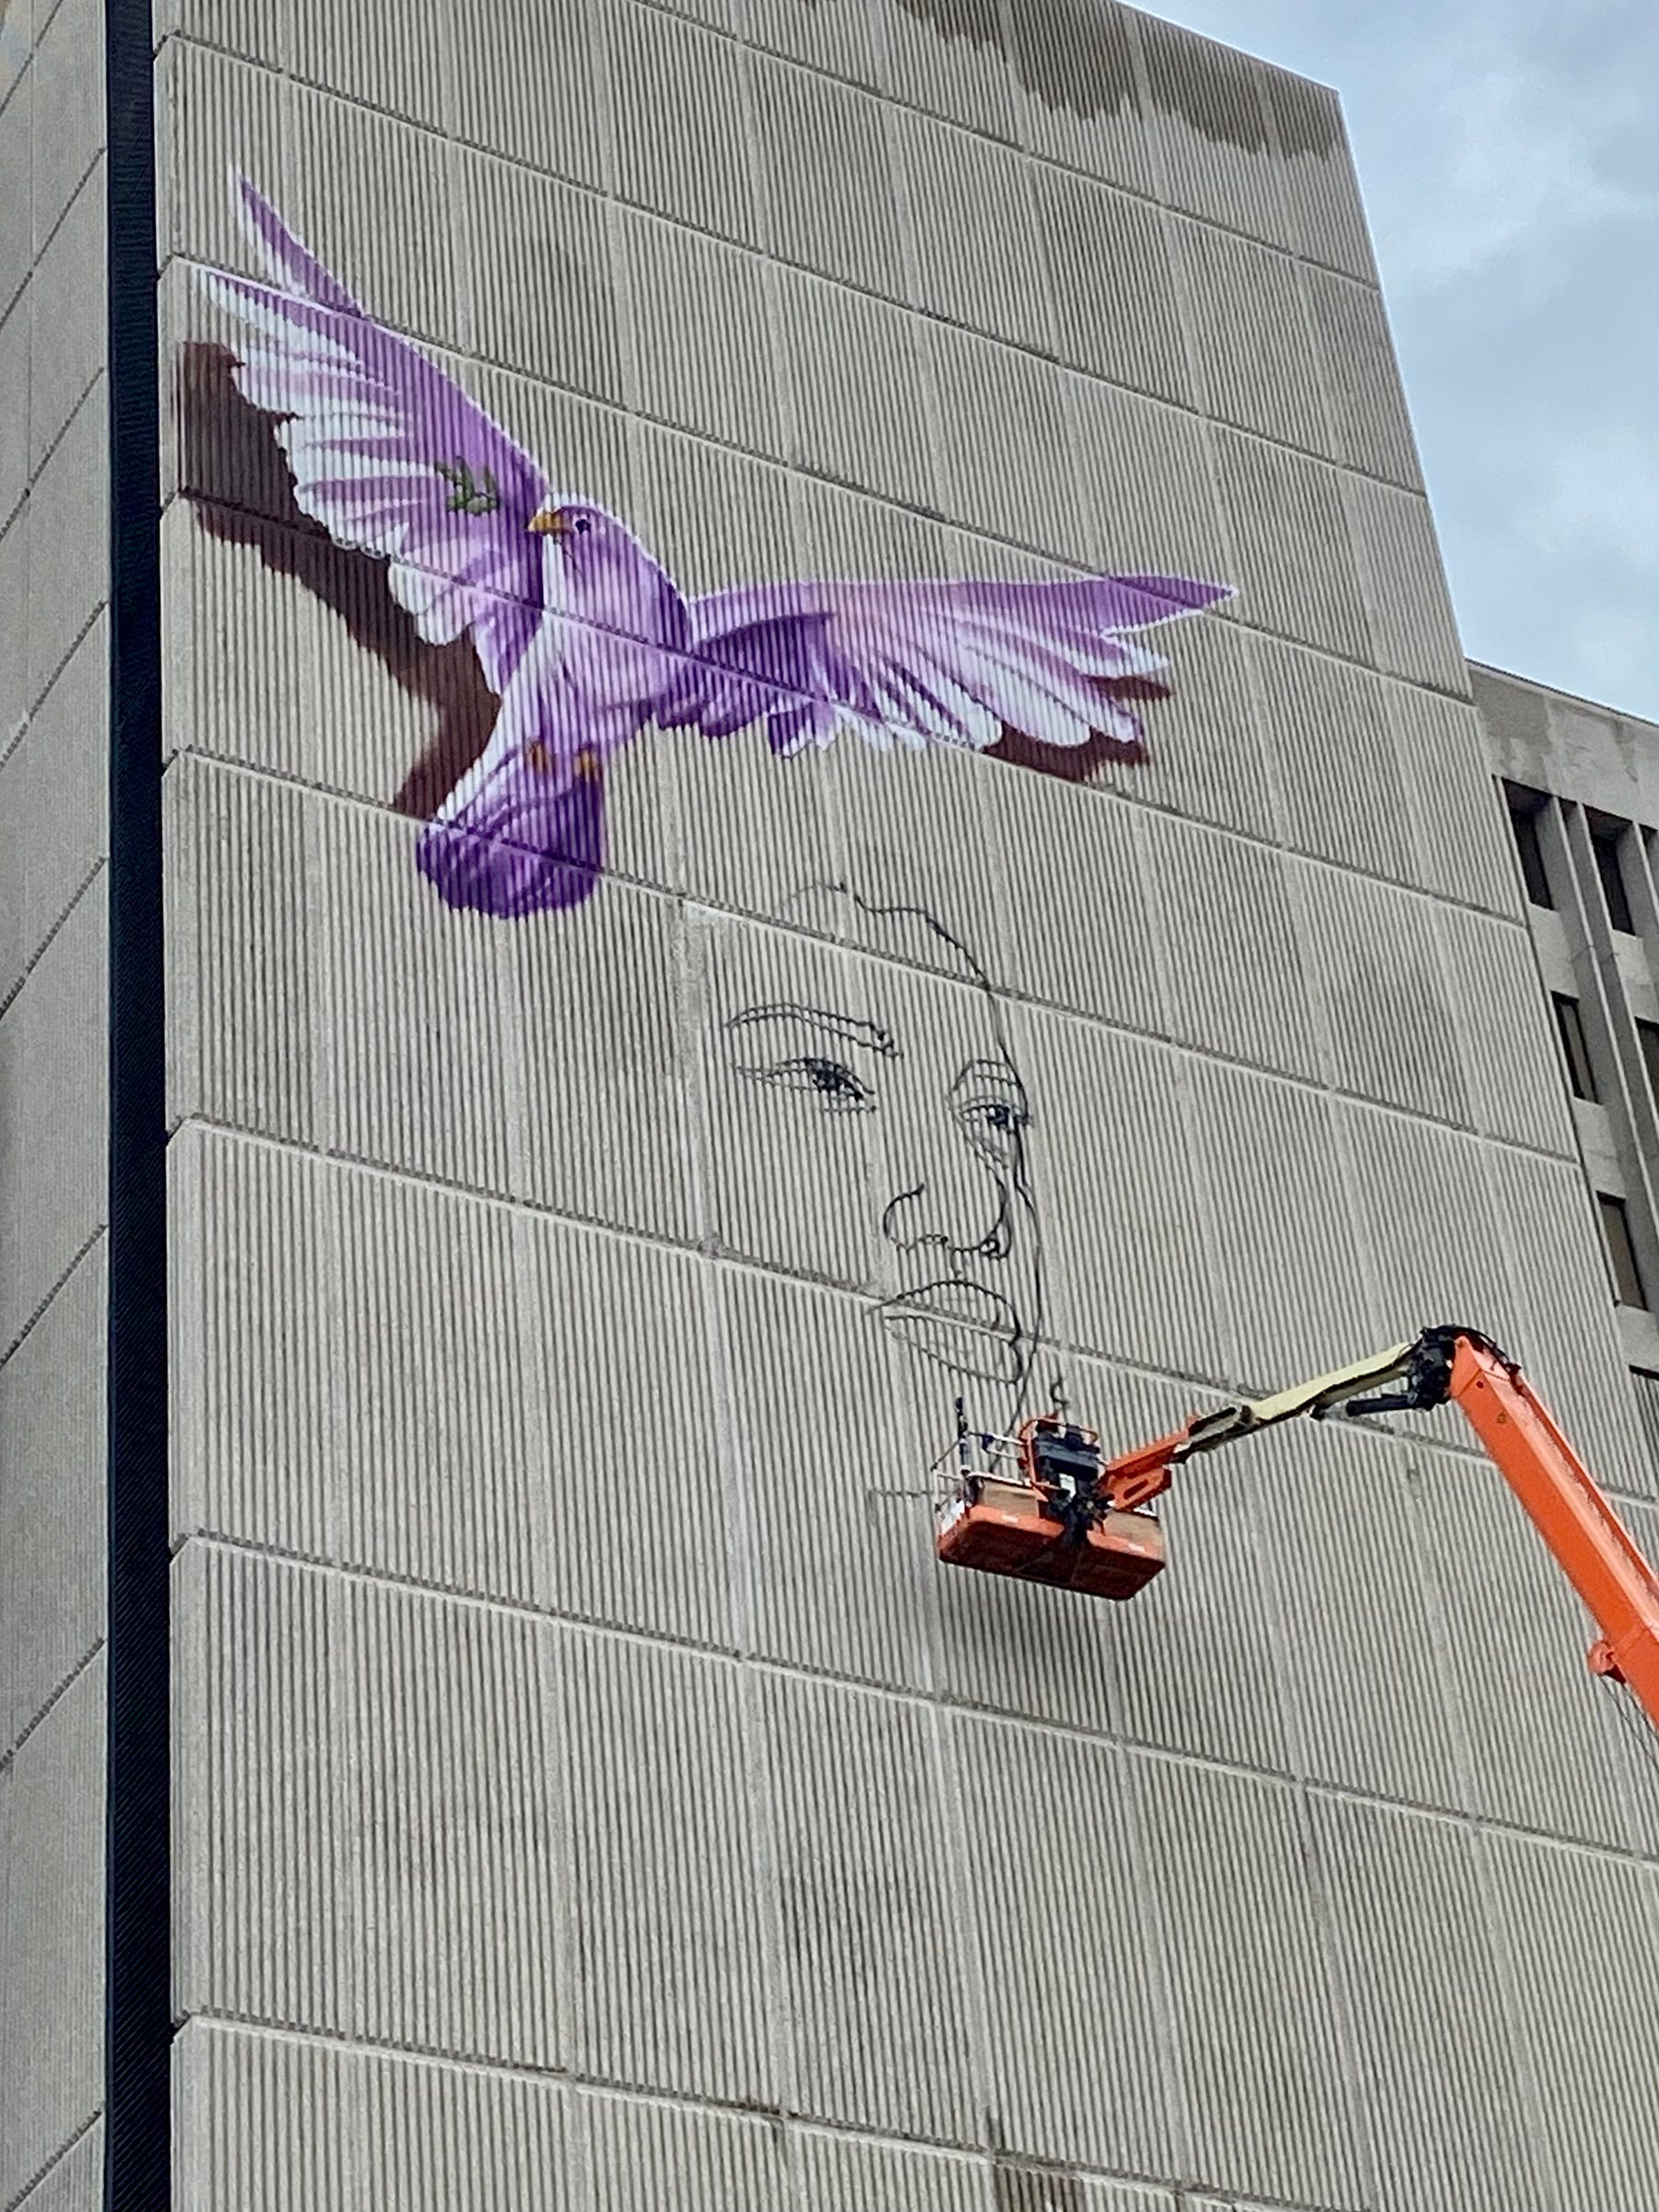 New Detroit mural to 'plant the seed' of awareness in global fight against hunger